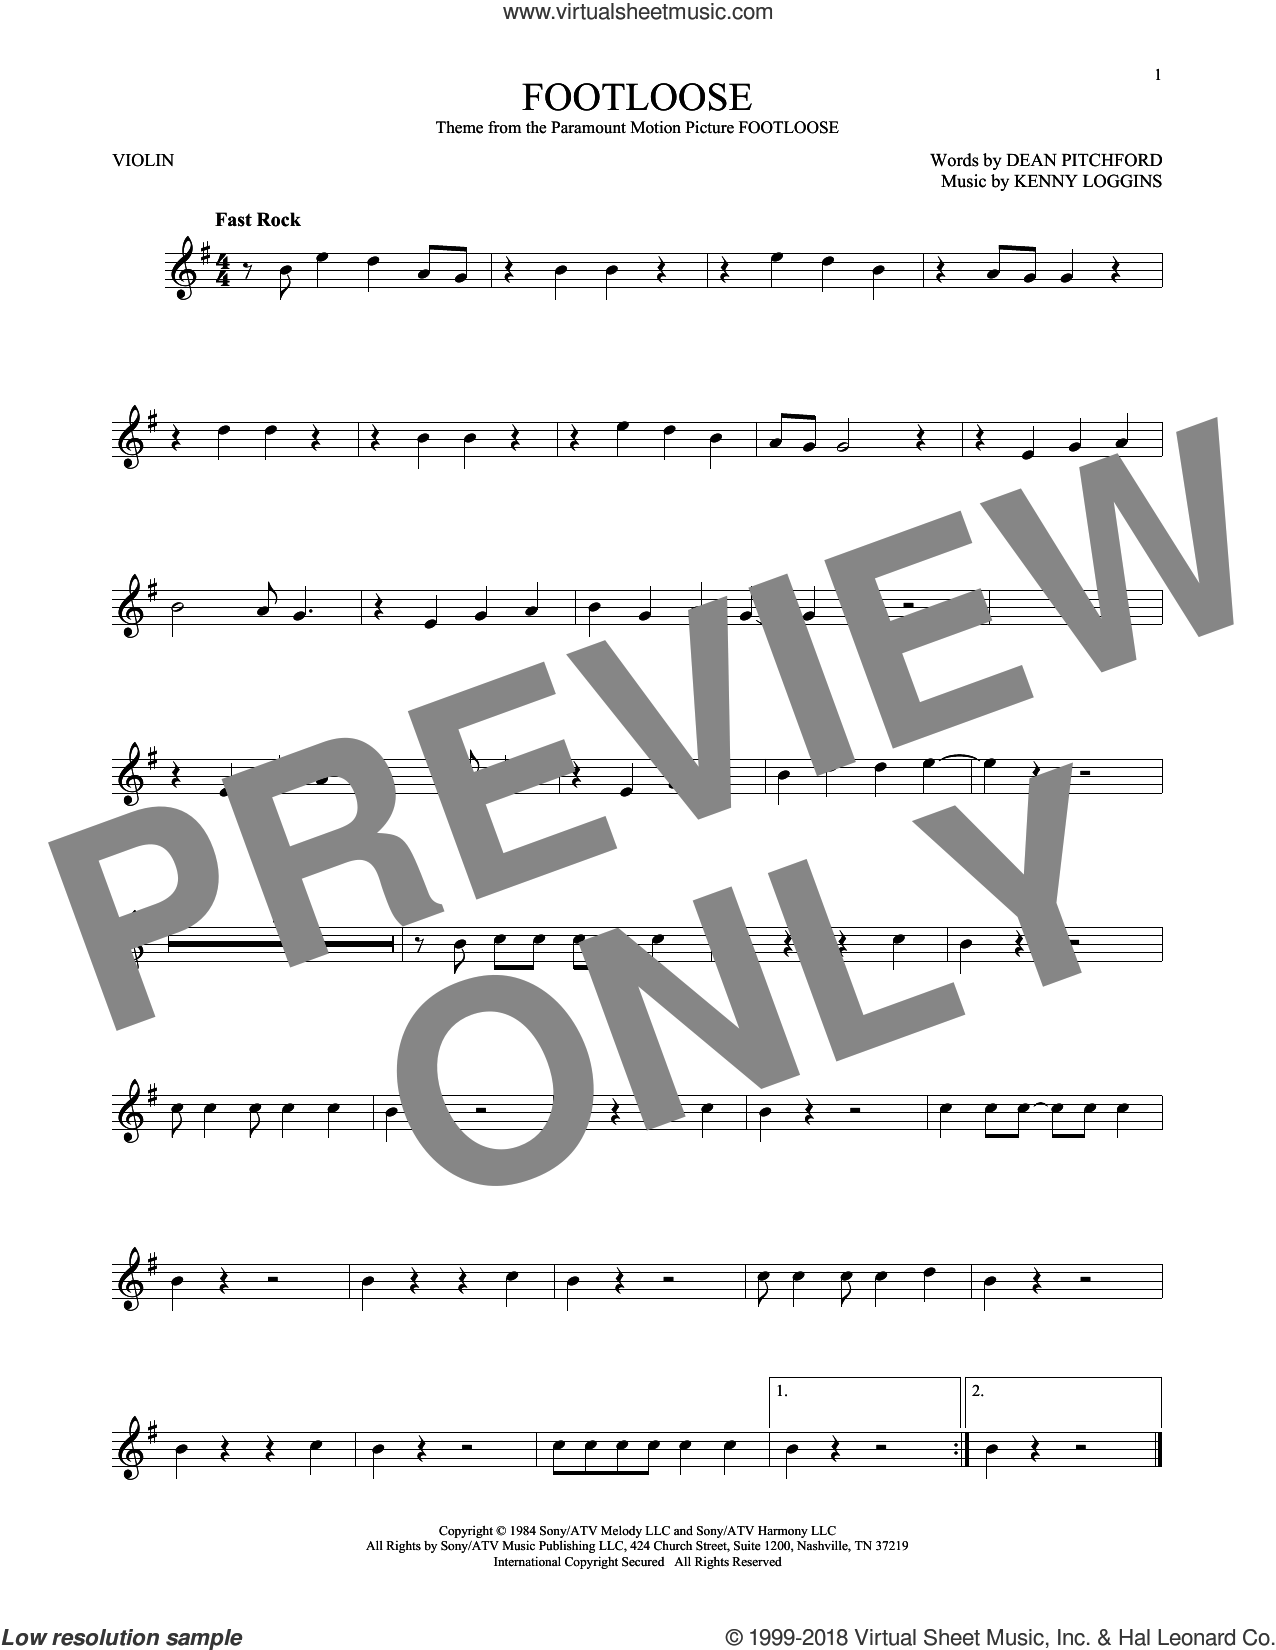 Footloose sheet music for violin solo by Dean Pitchford